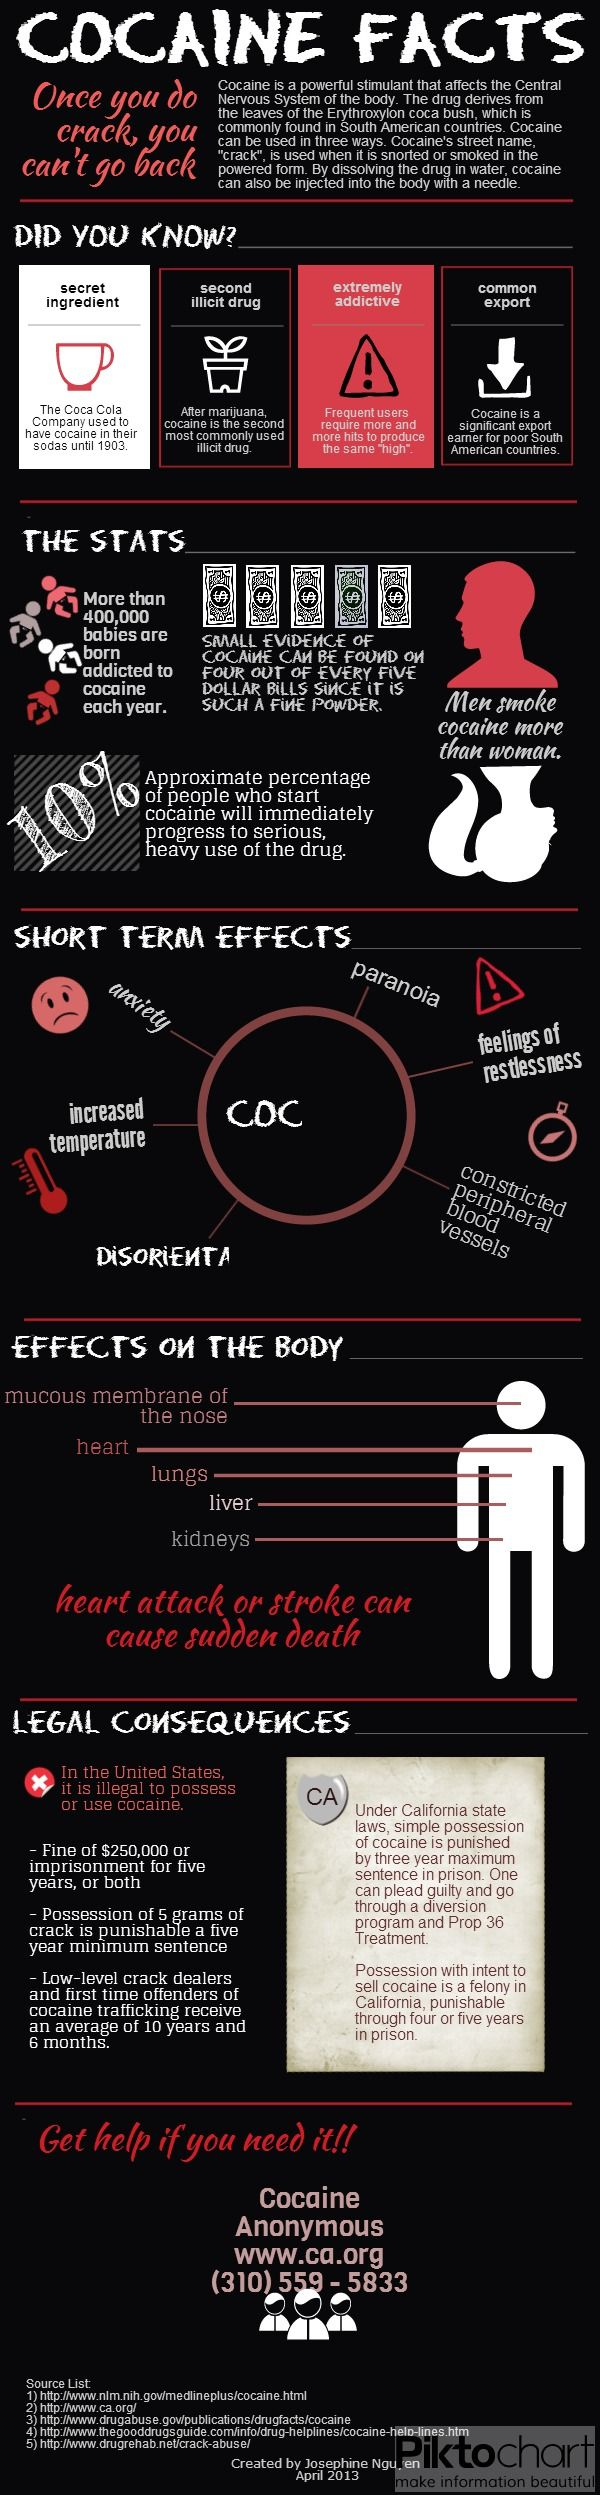 Bad things about Drugs?